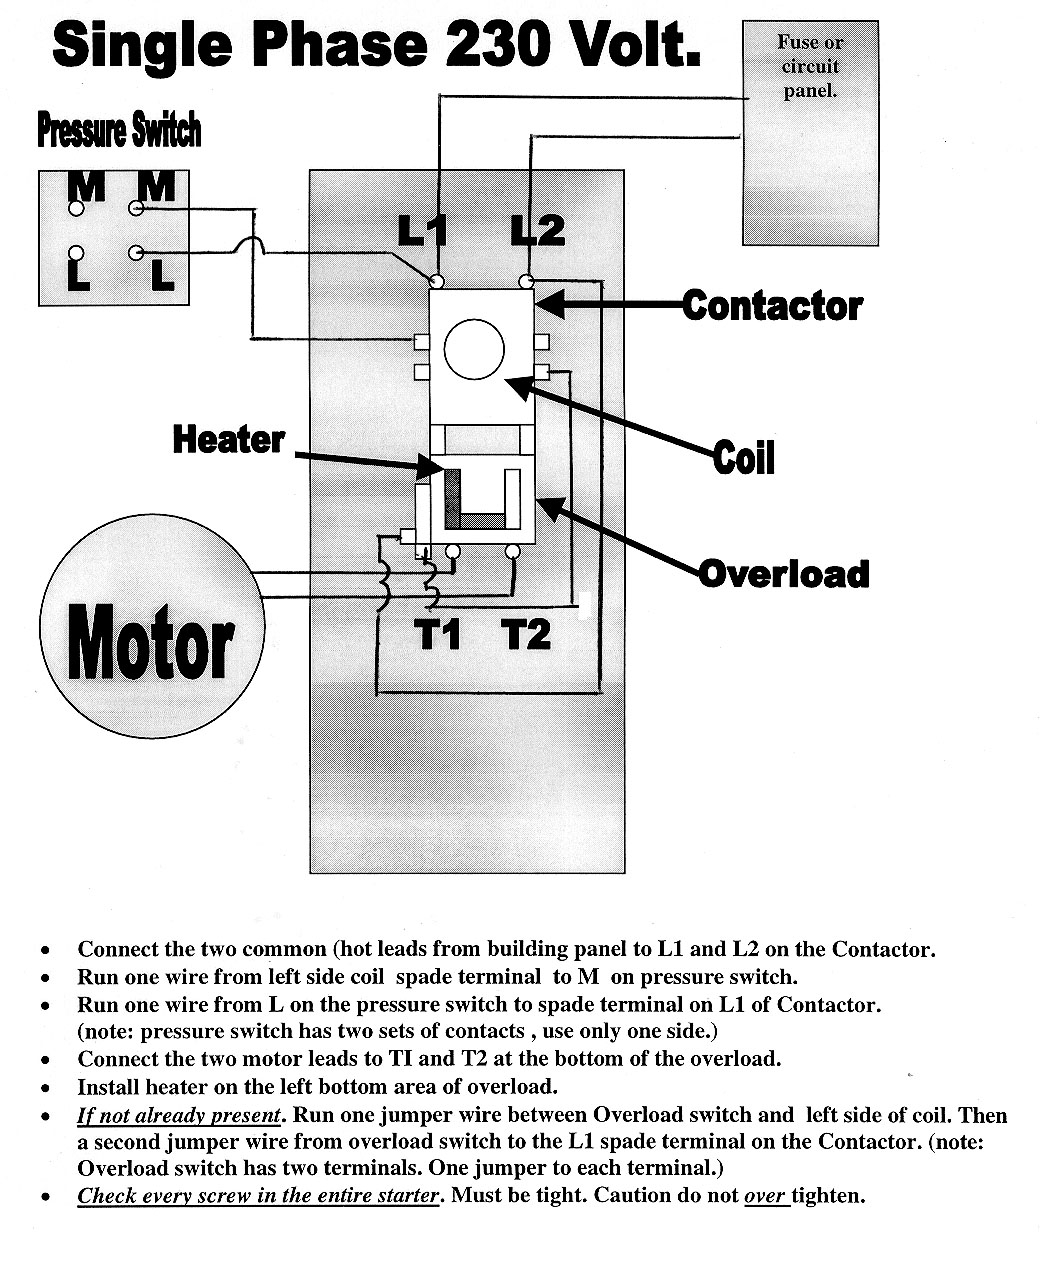 120v To 230v Single Phase Wiring Diagram